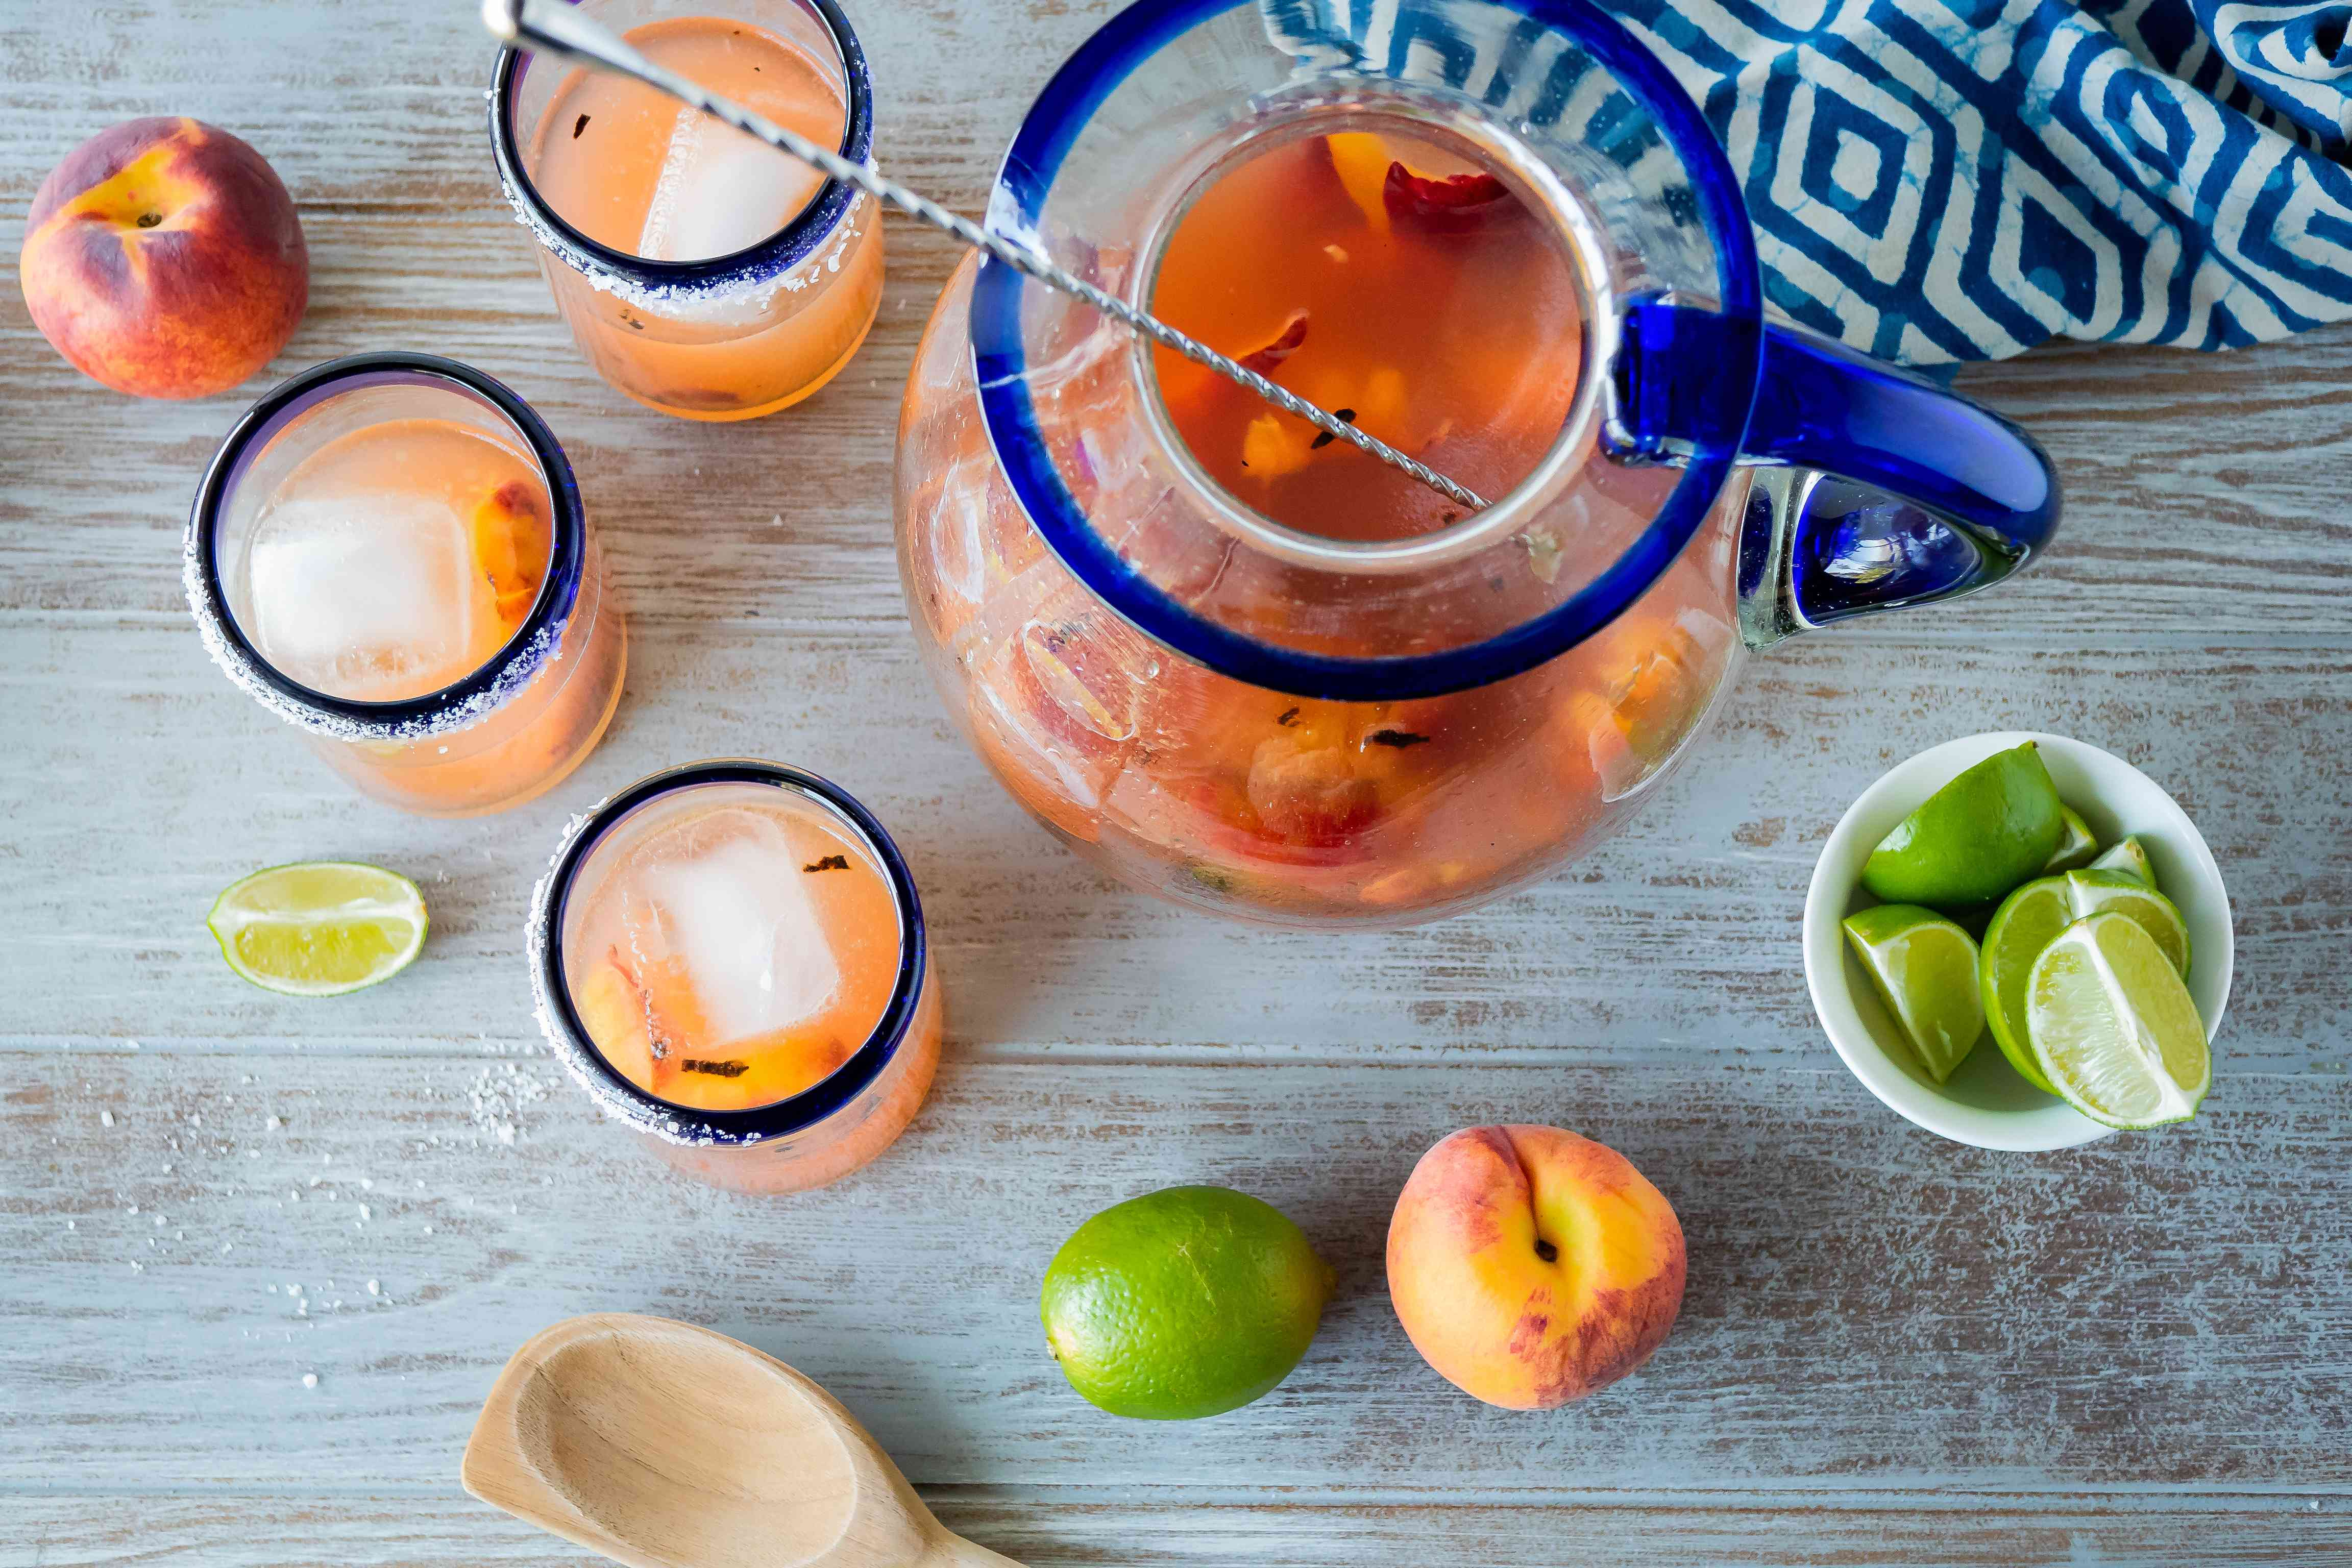 Overhead view of peach margaritas made with grilled peaches.